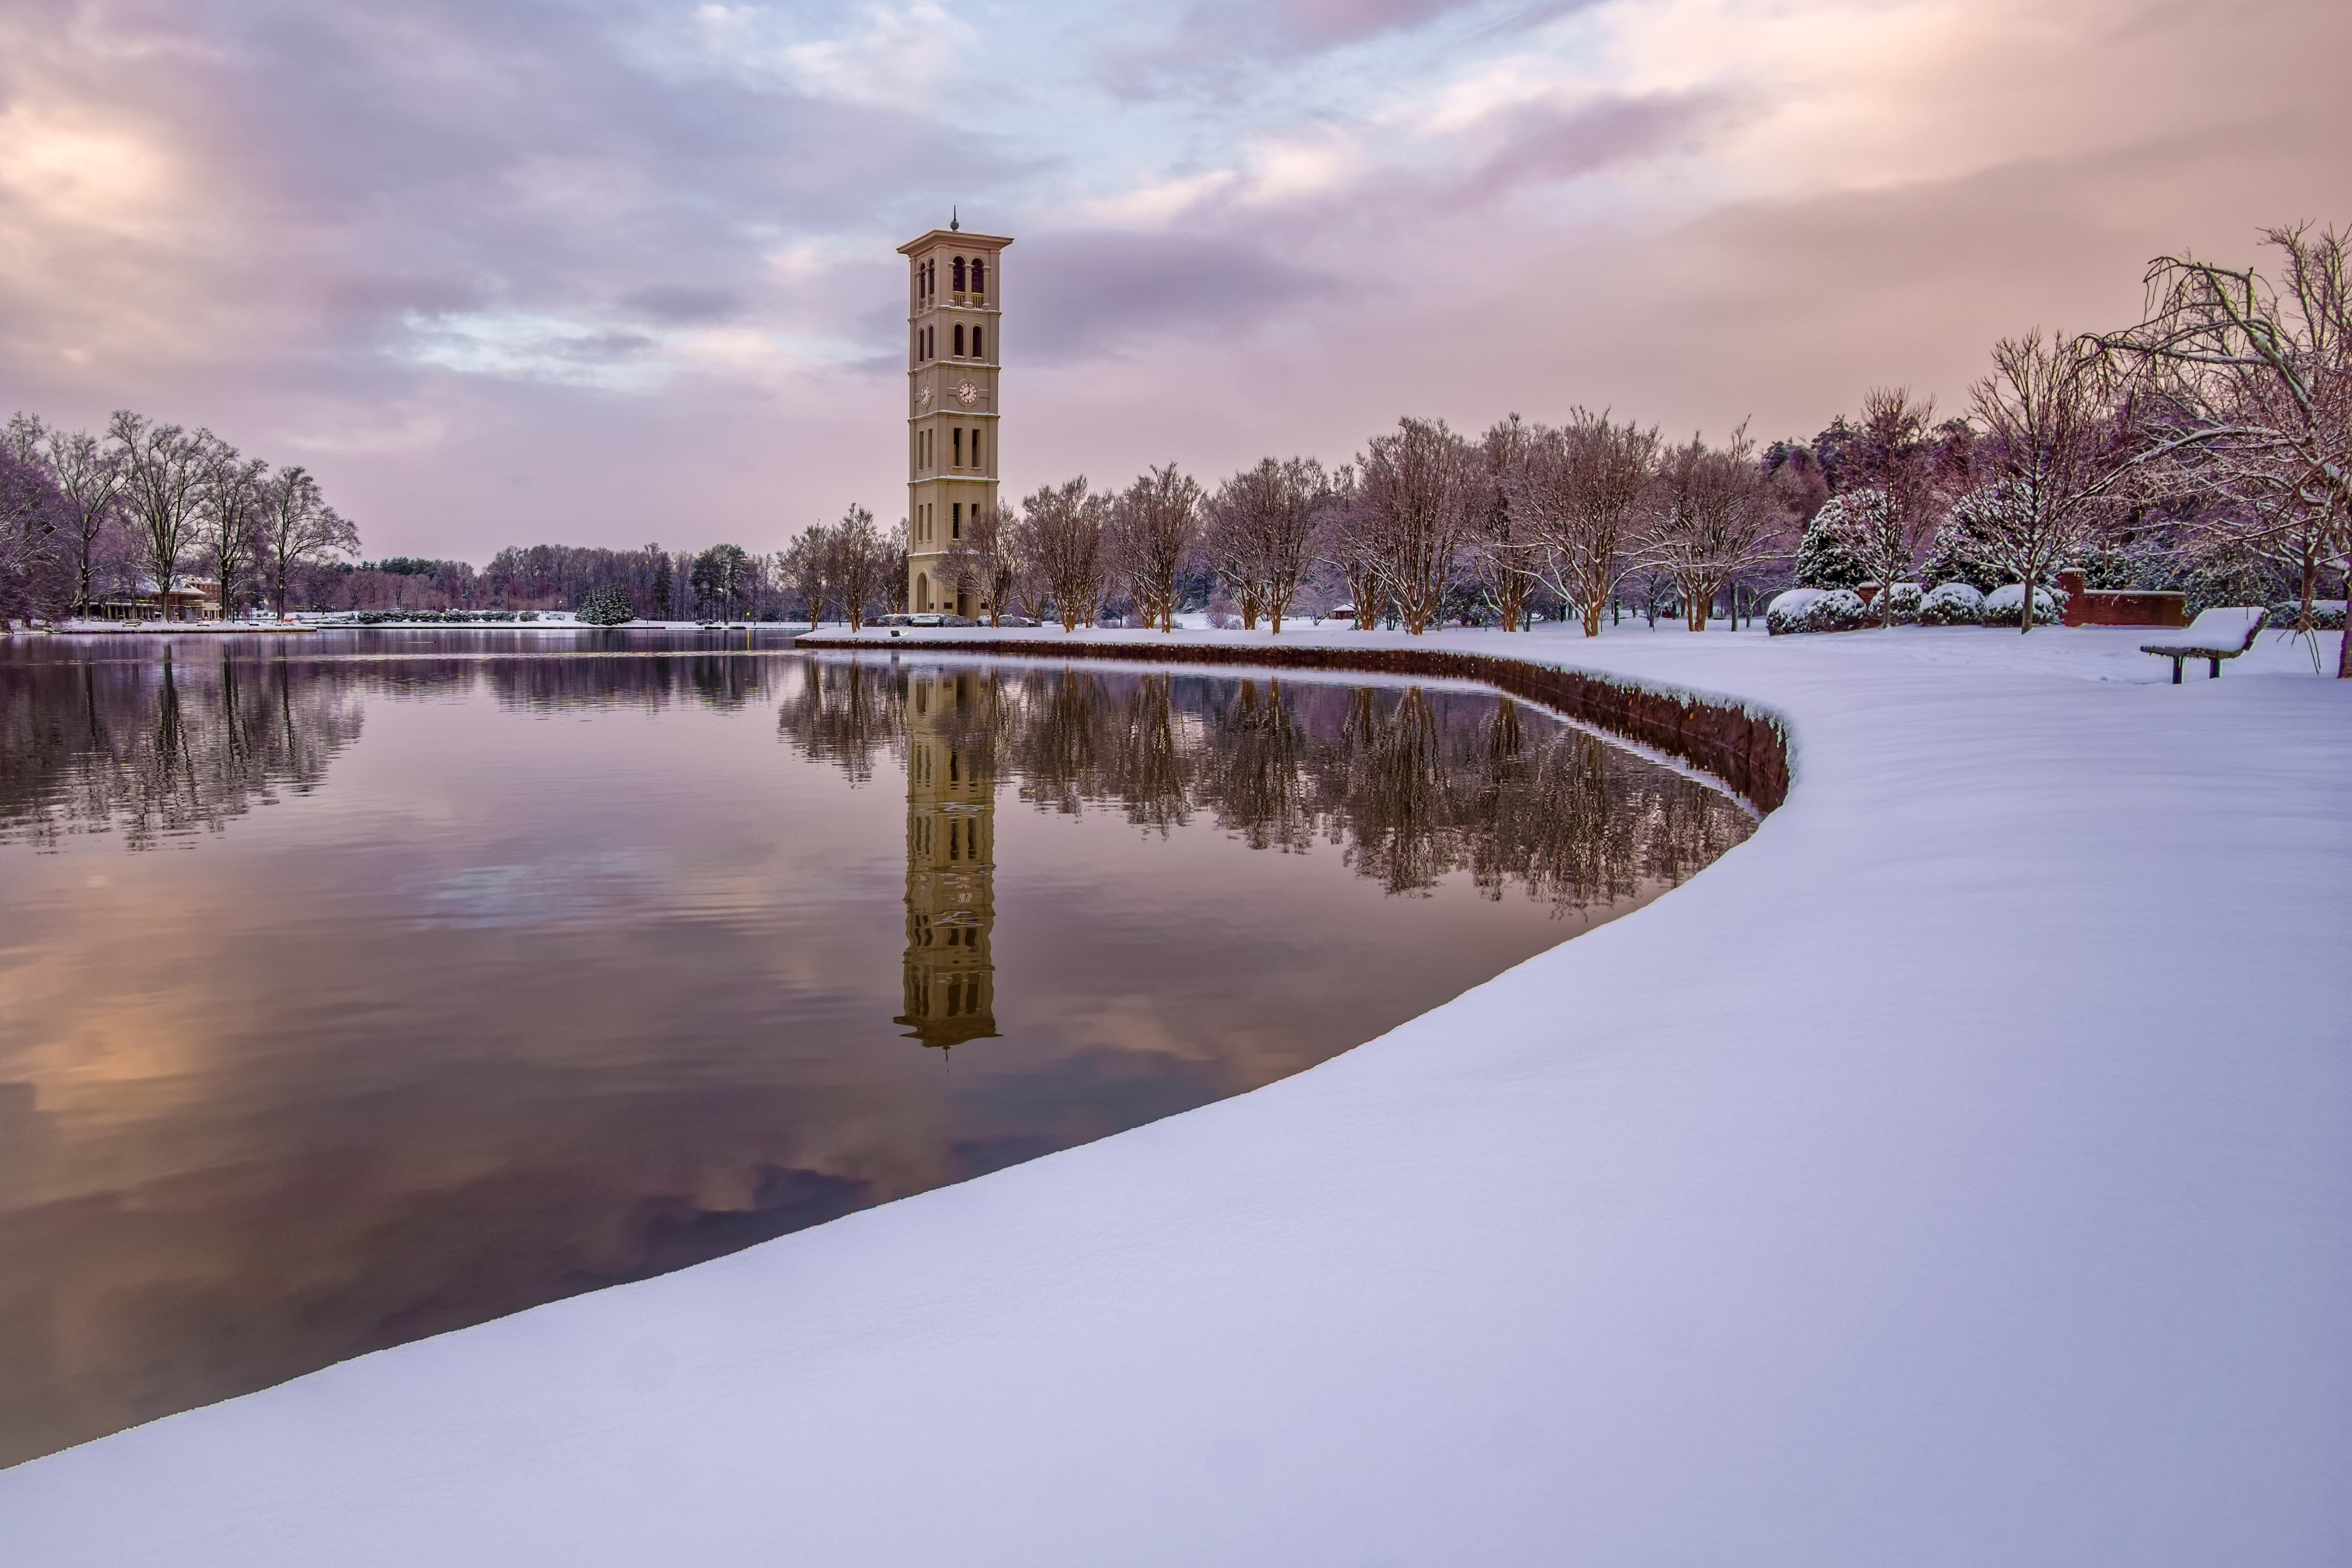 A view of the lake, walking area and sitting bench near Furman University